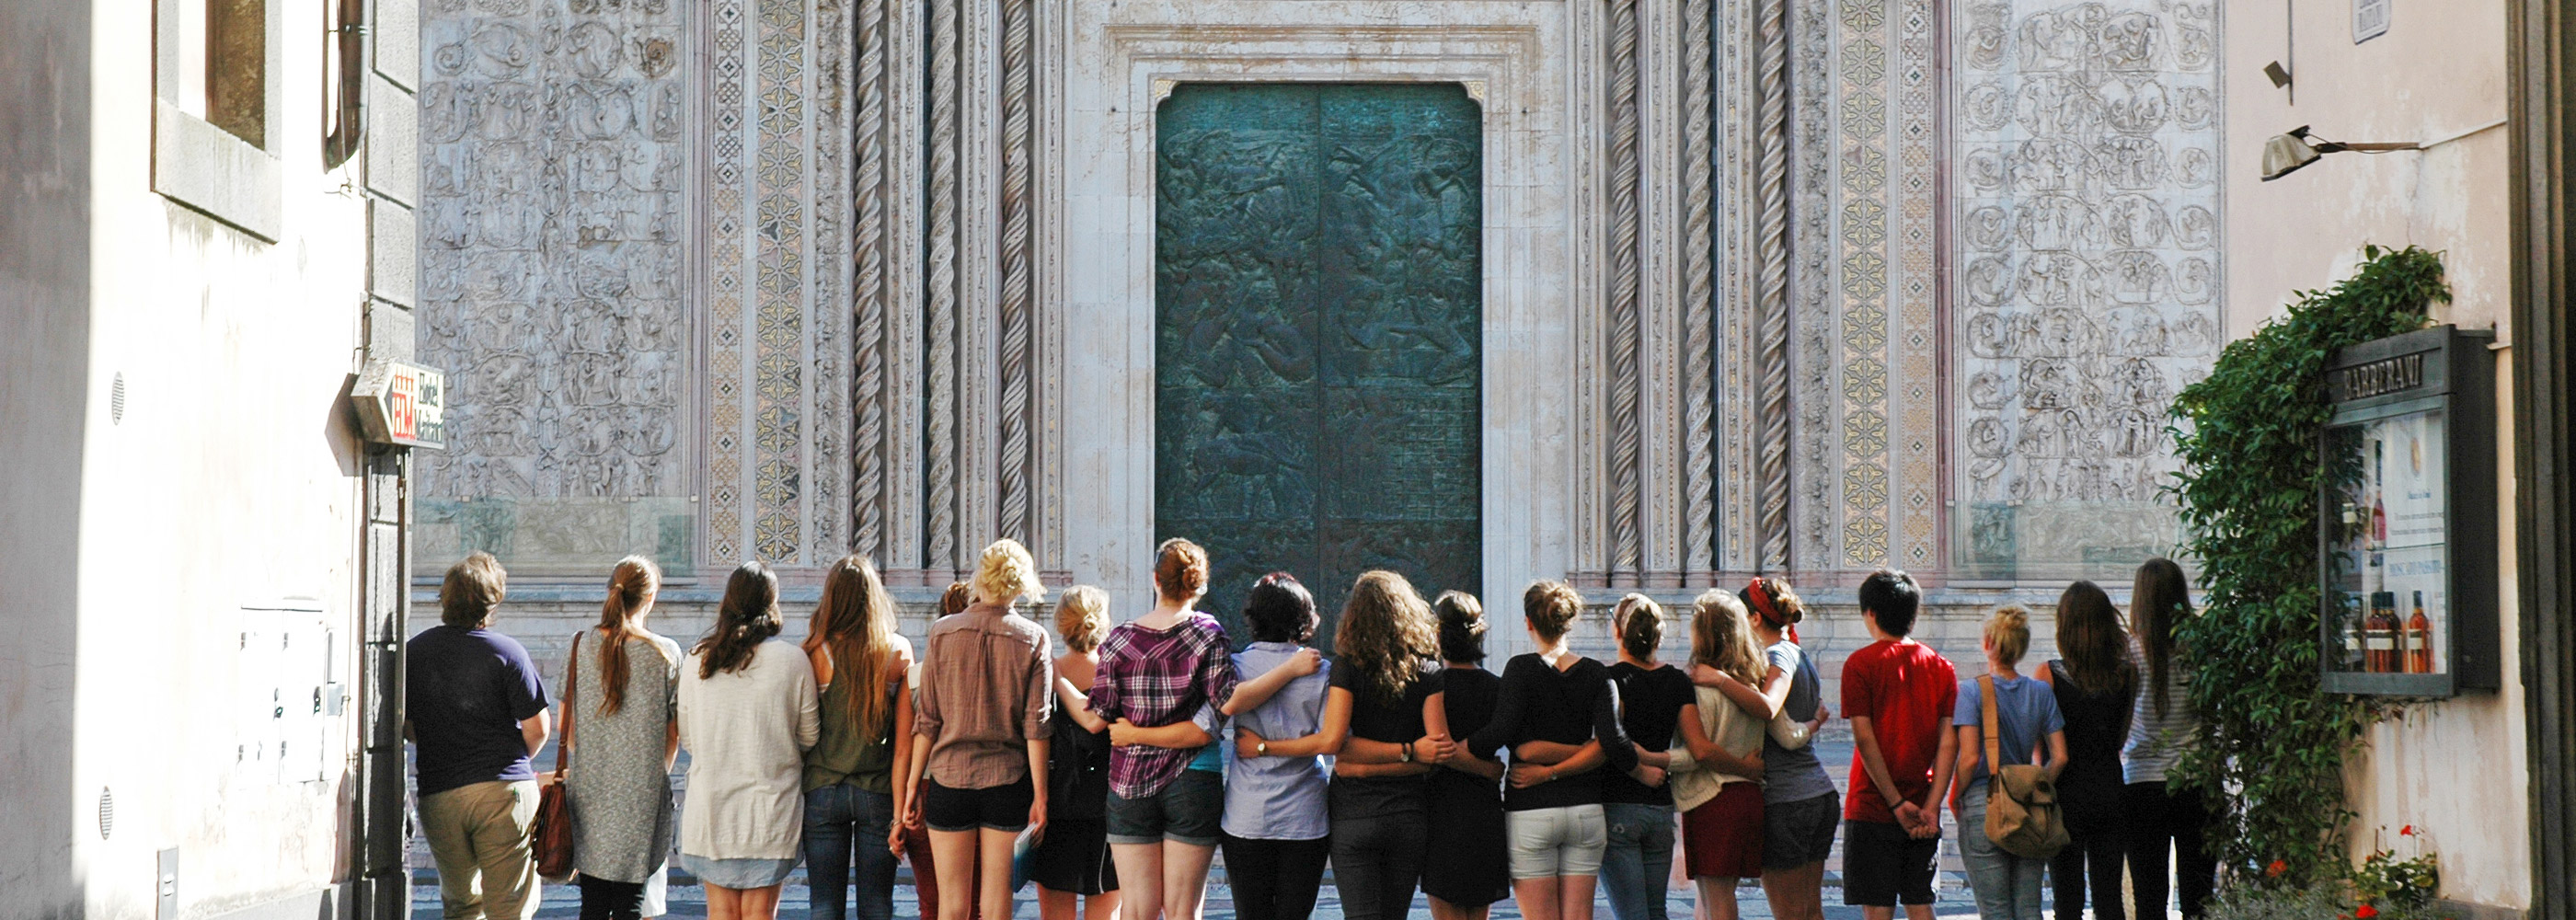 Orvieto students linking arms in front of Duomo